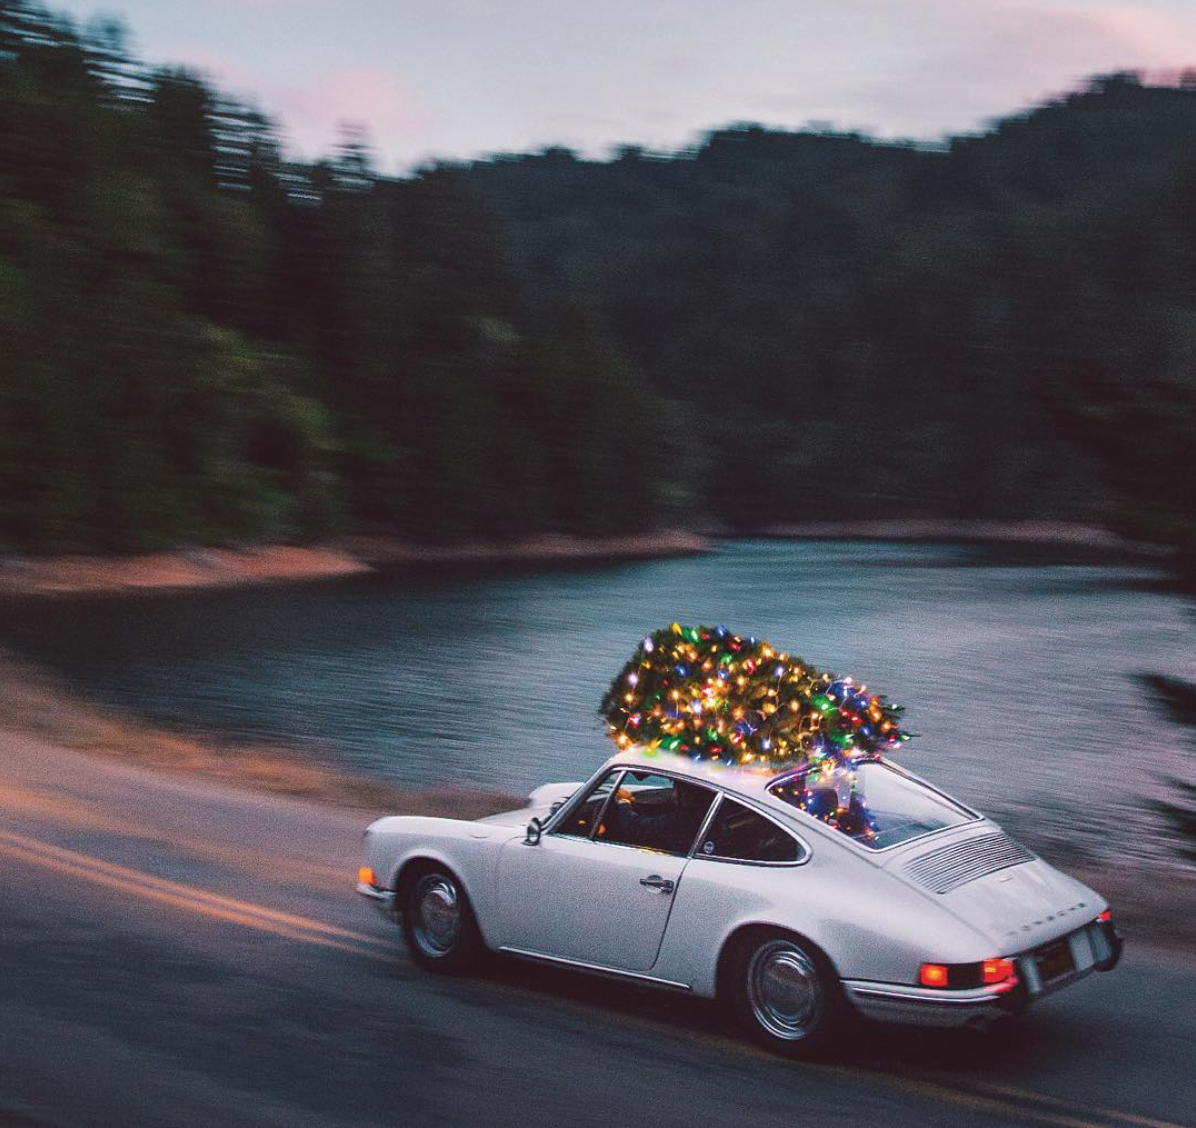 Huckberry\u0027s Porsche 912 with Christmas Tree on top